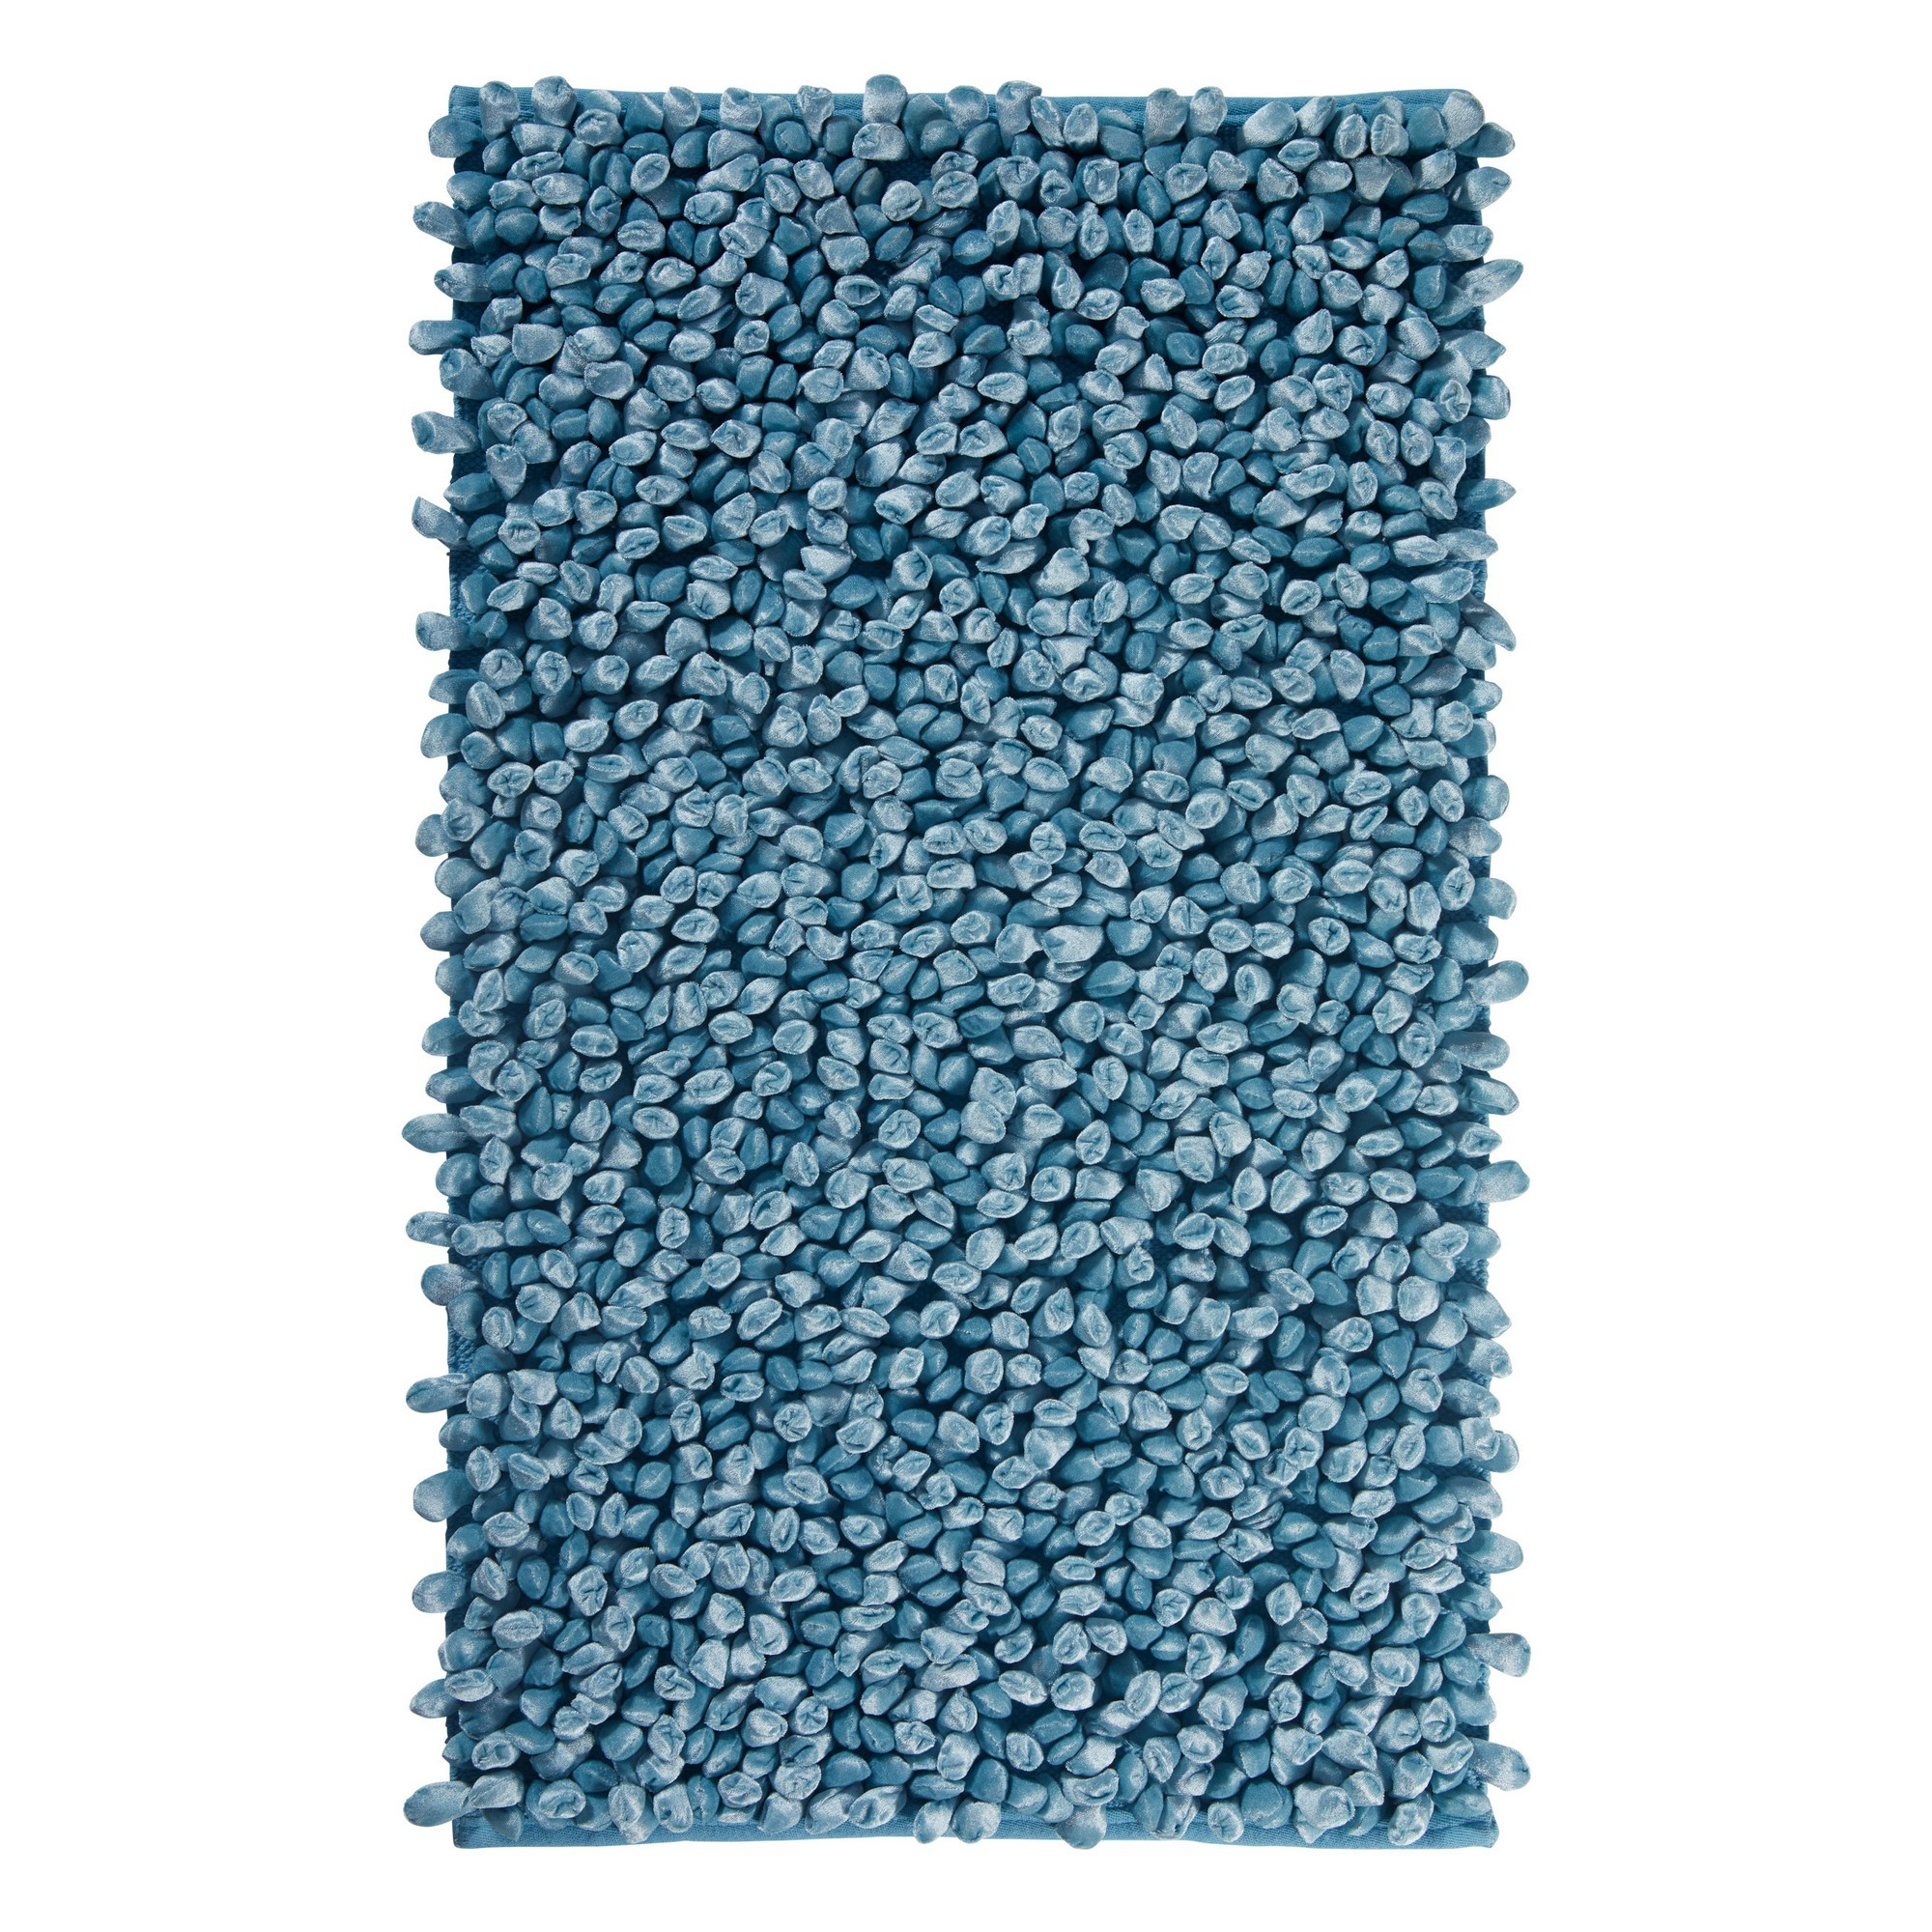 Aquanova Rocca Bath Mat, 100x60cm, Aquatic